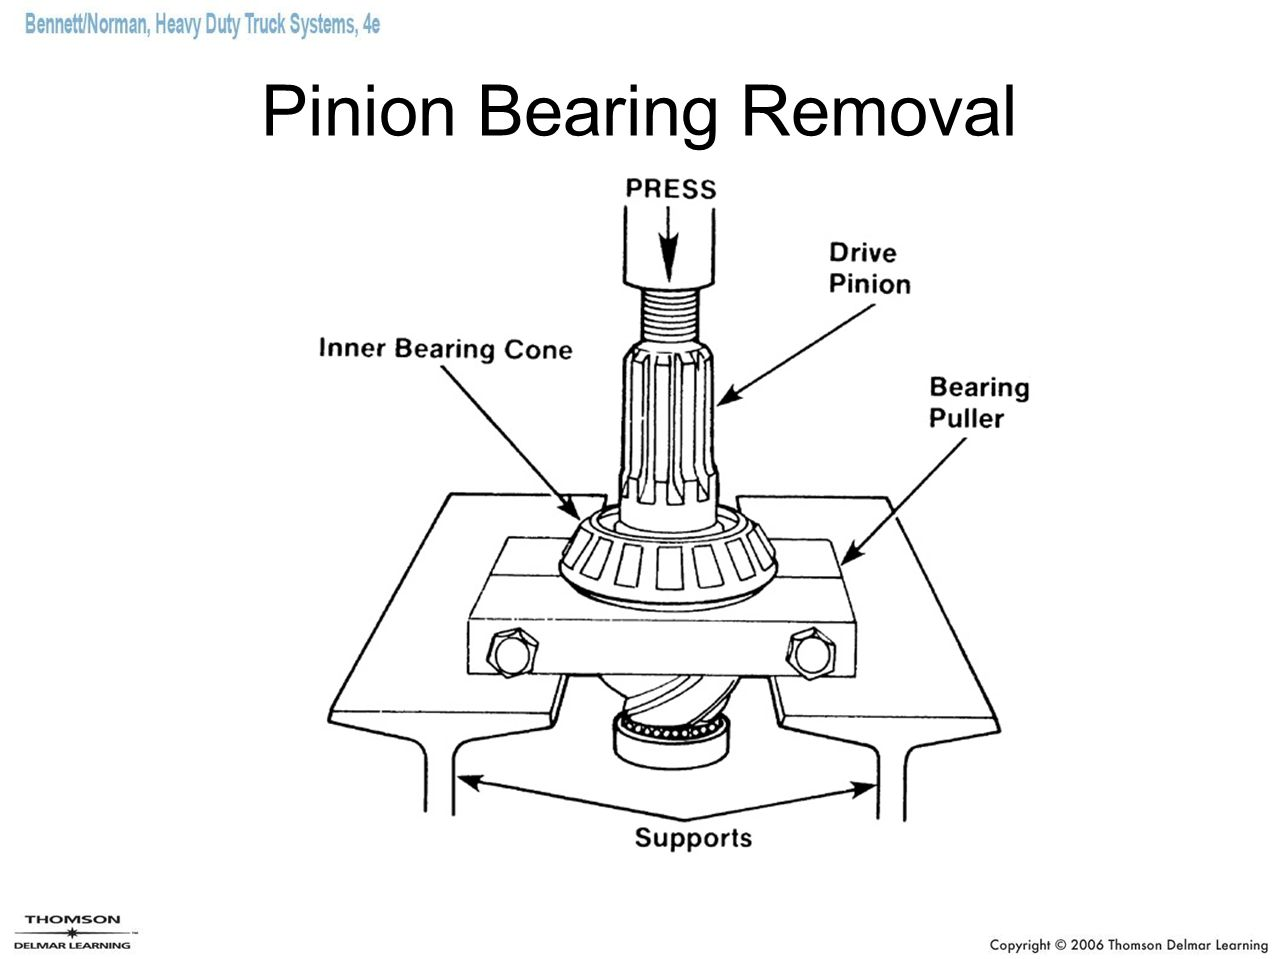 Pinion Bearing Removal